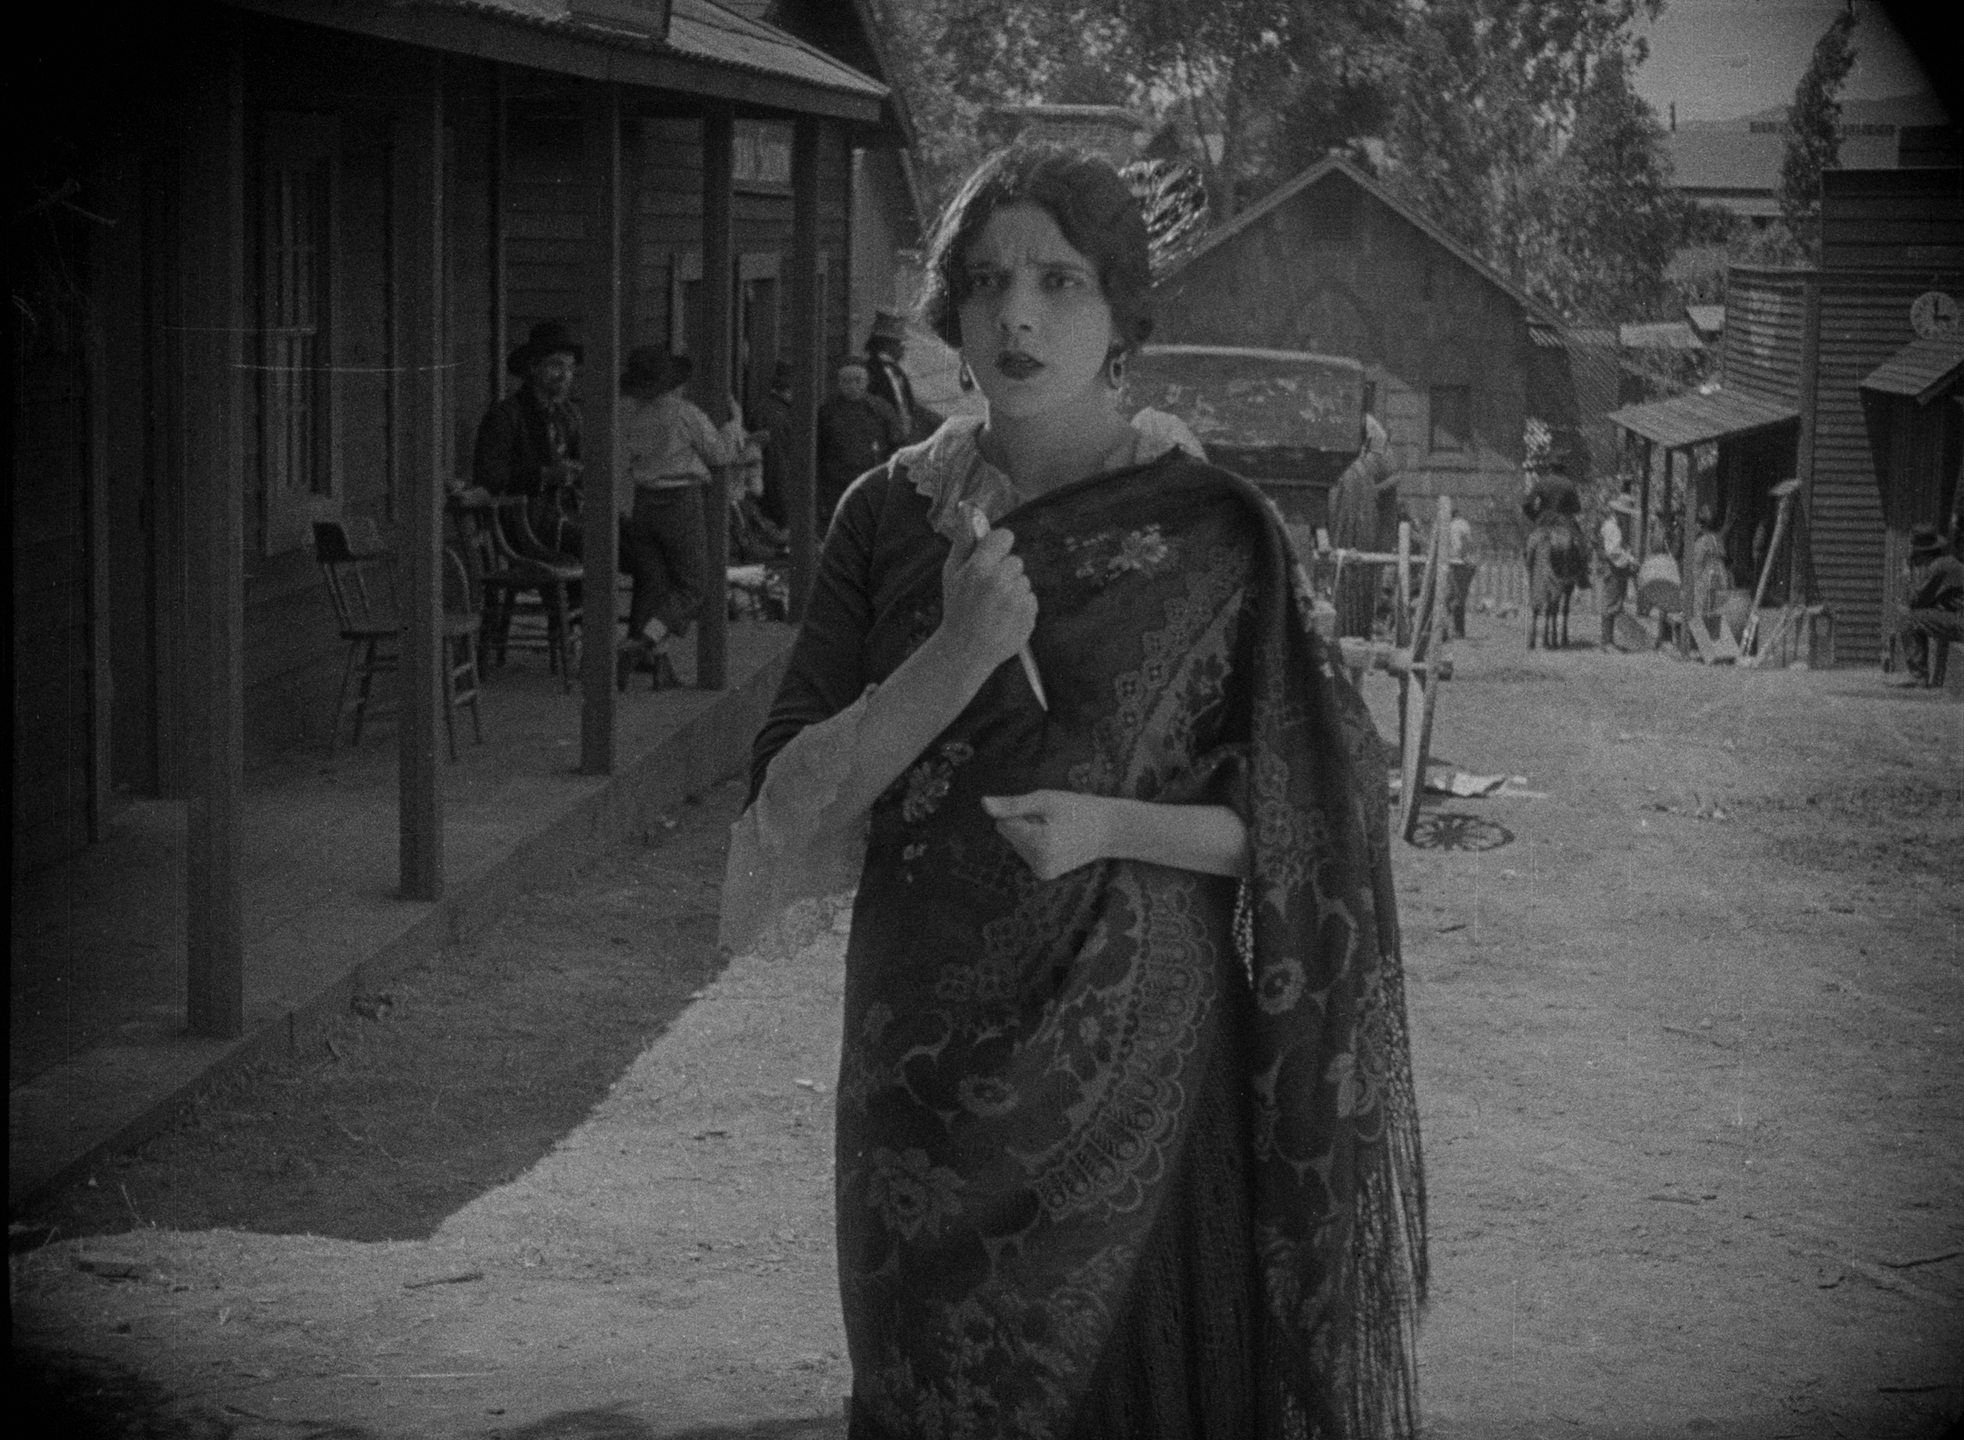 Notes from Forever Film: The Half-Breed (1916, Allan Dwan)